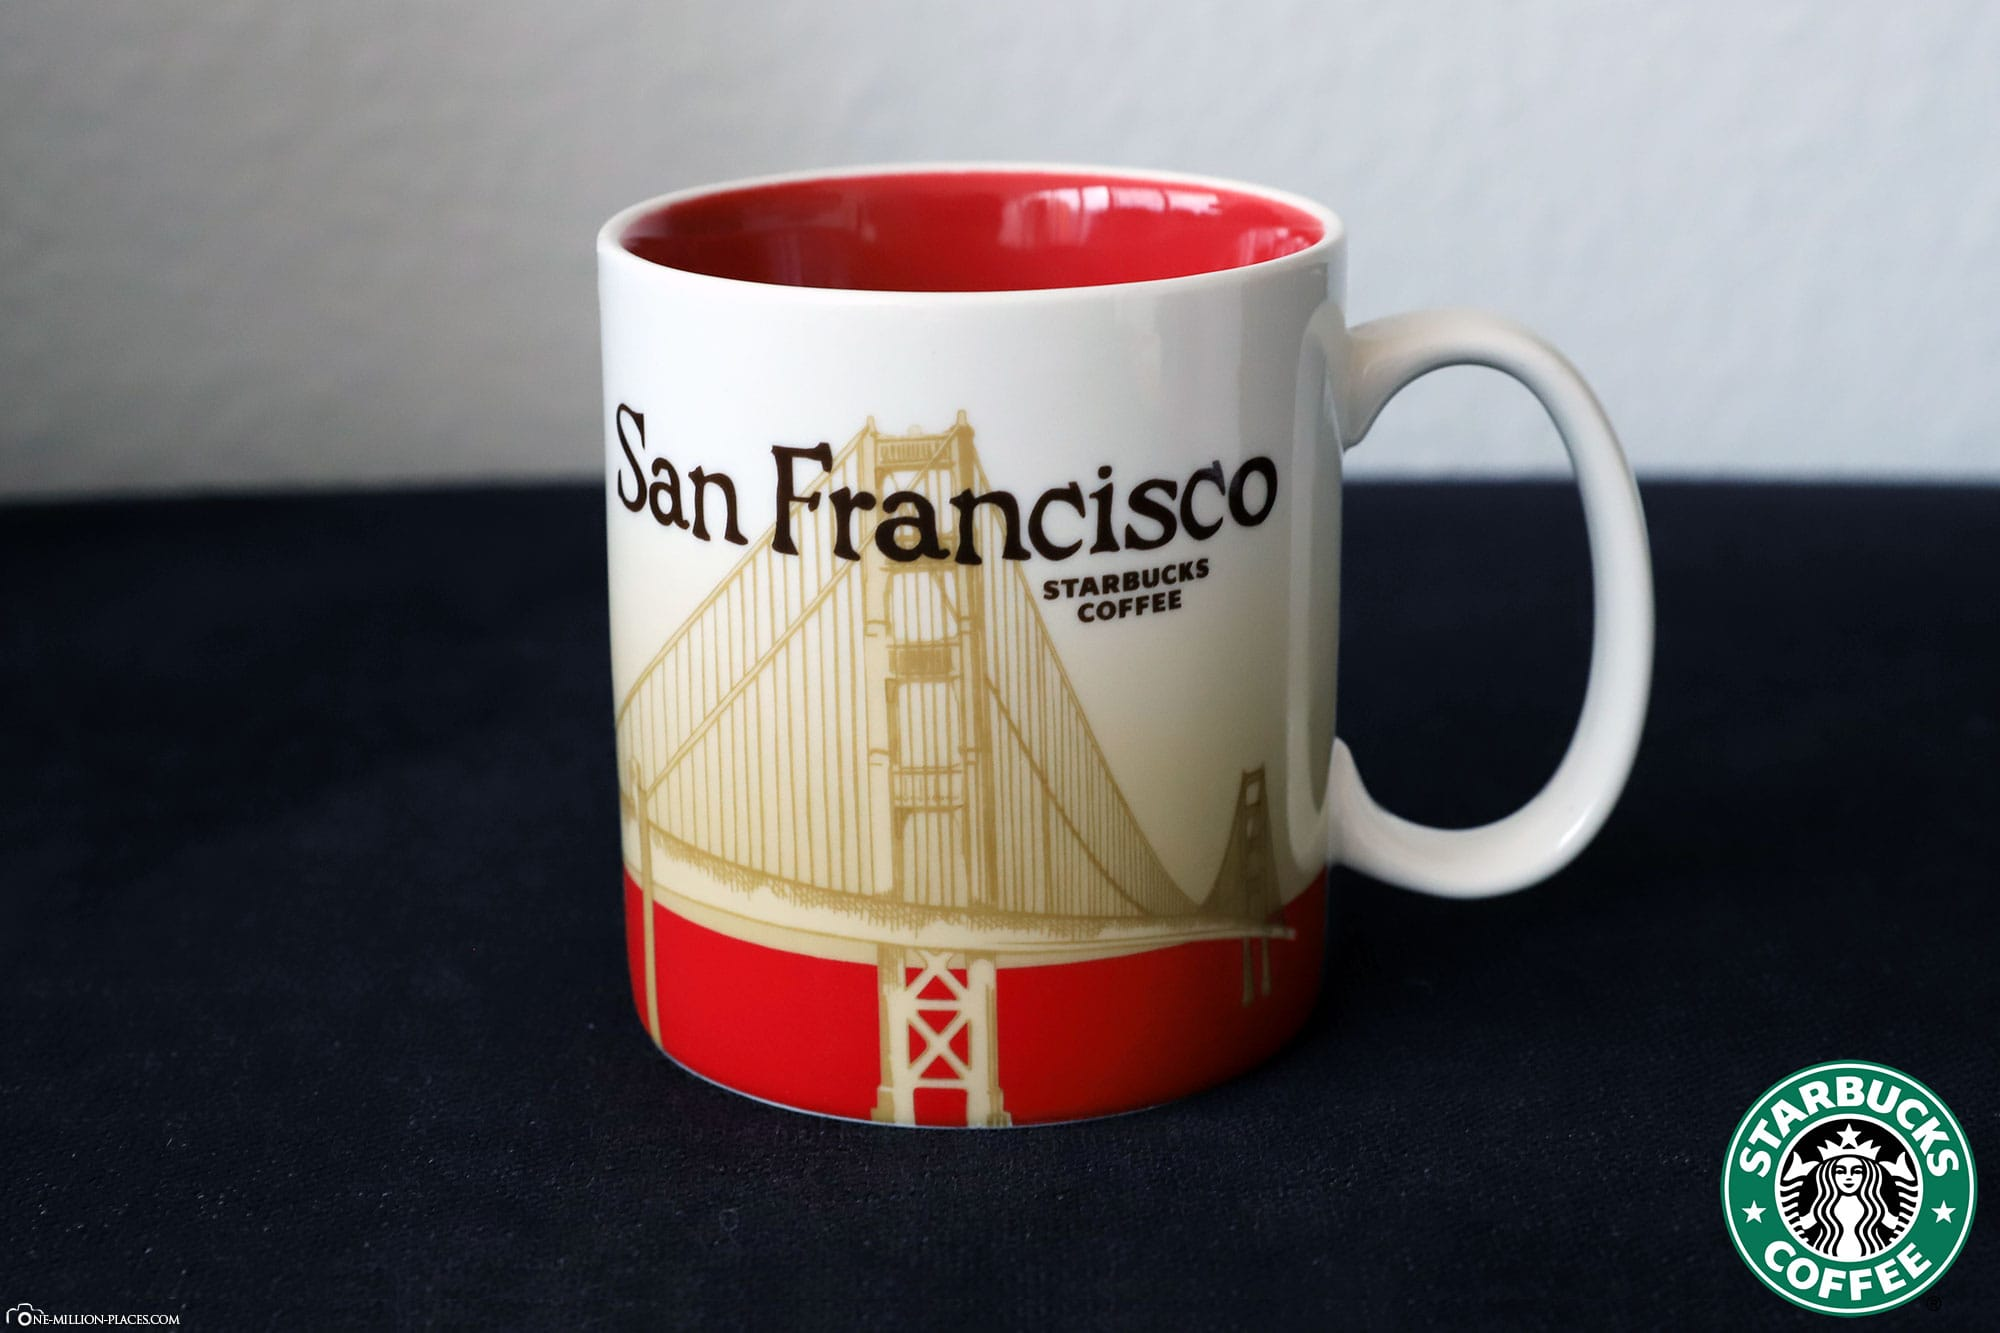 San Francisco, Starbucks Tasse, Global Icon Serie, City Mugs, Sammlung, USA, Reisebericht